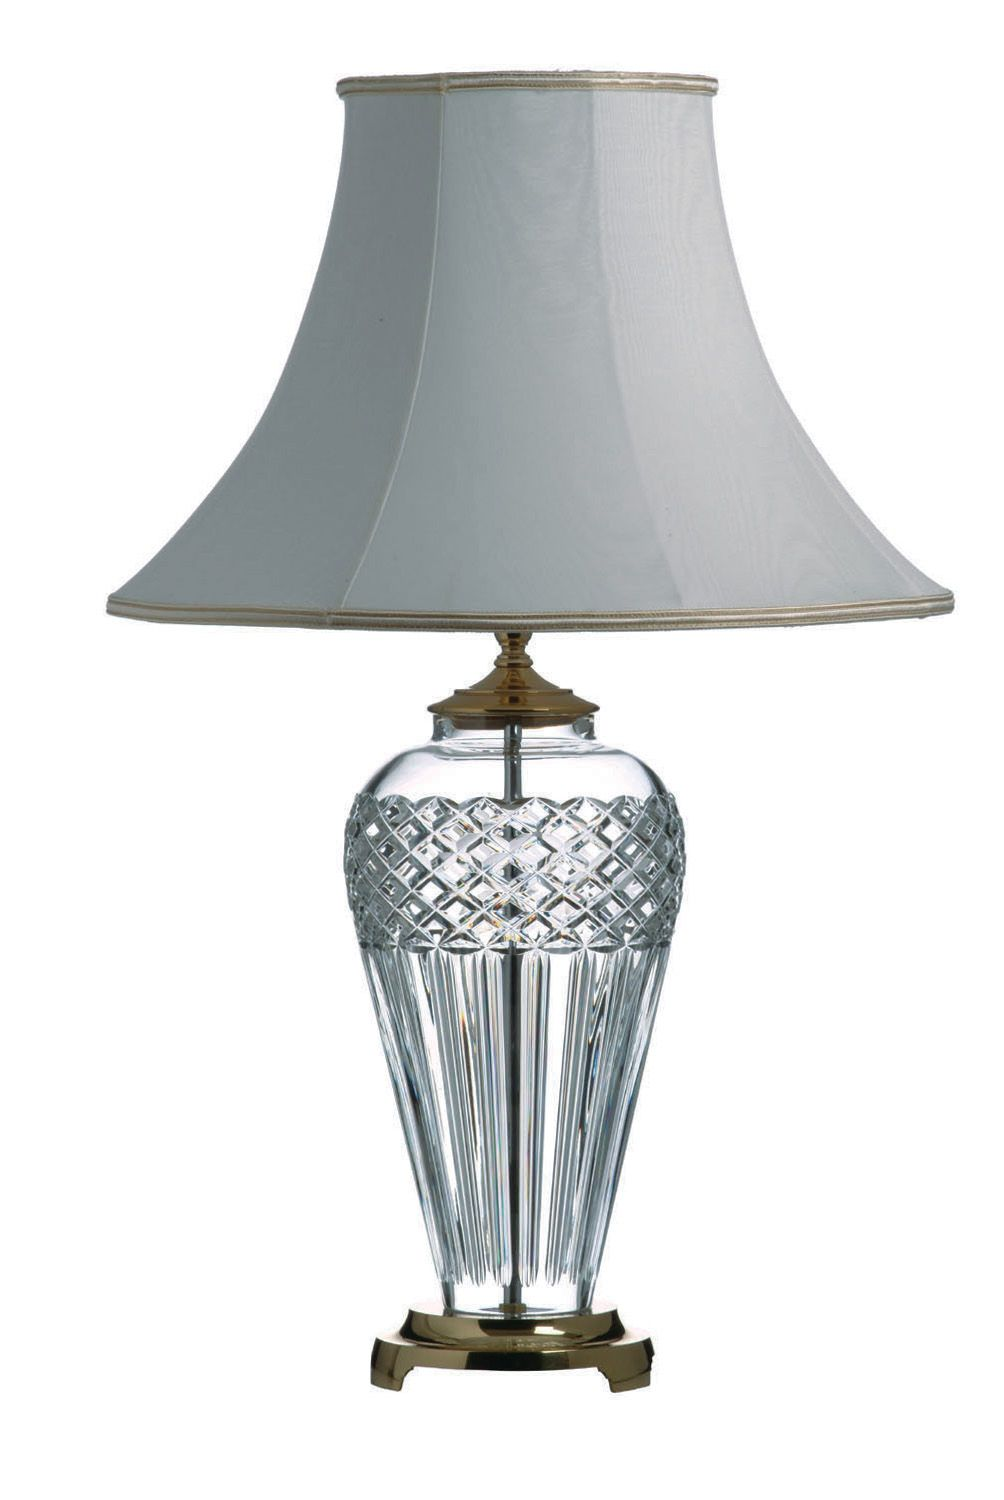 Desk Lamps On Where Can I Buy Waterford Crystal Table Lamps Cheap